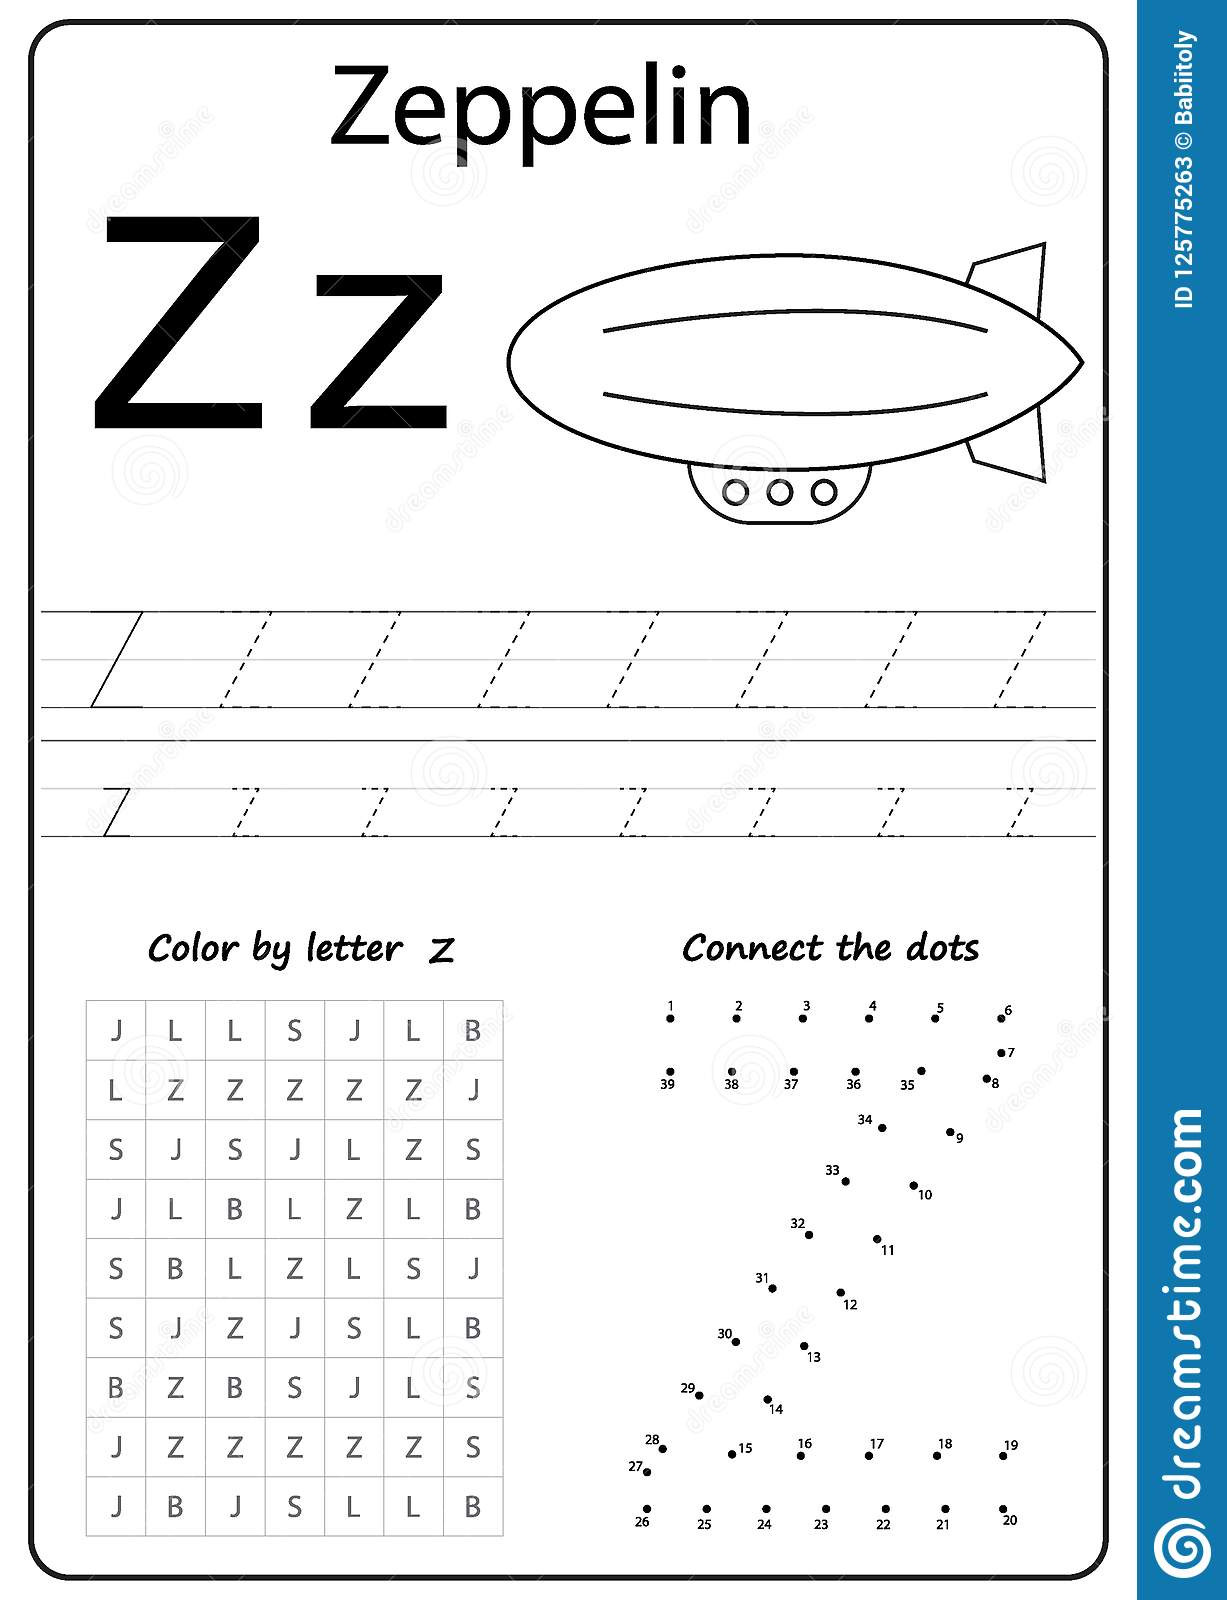 alphabet letter letter z worksheet task kids learning letters writing letter z worksheet writing z alphabet exercises game